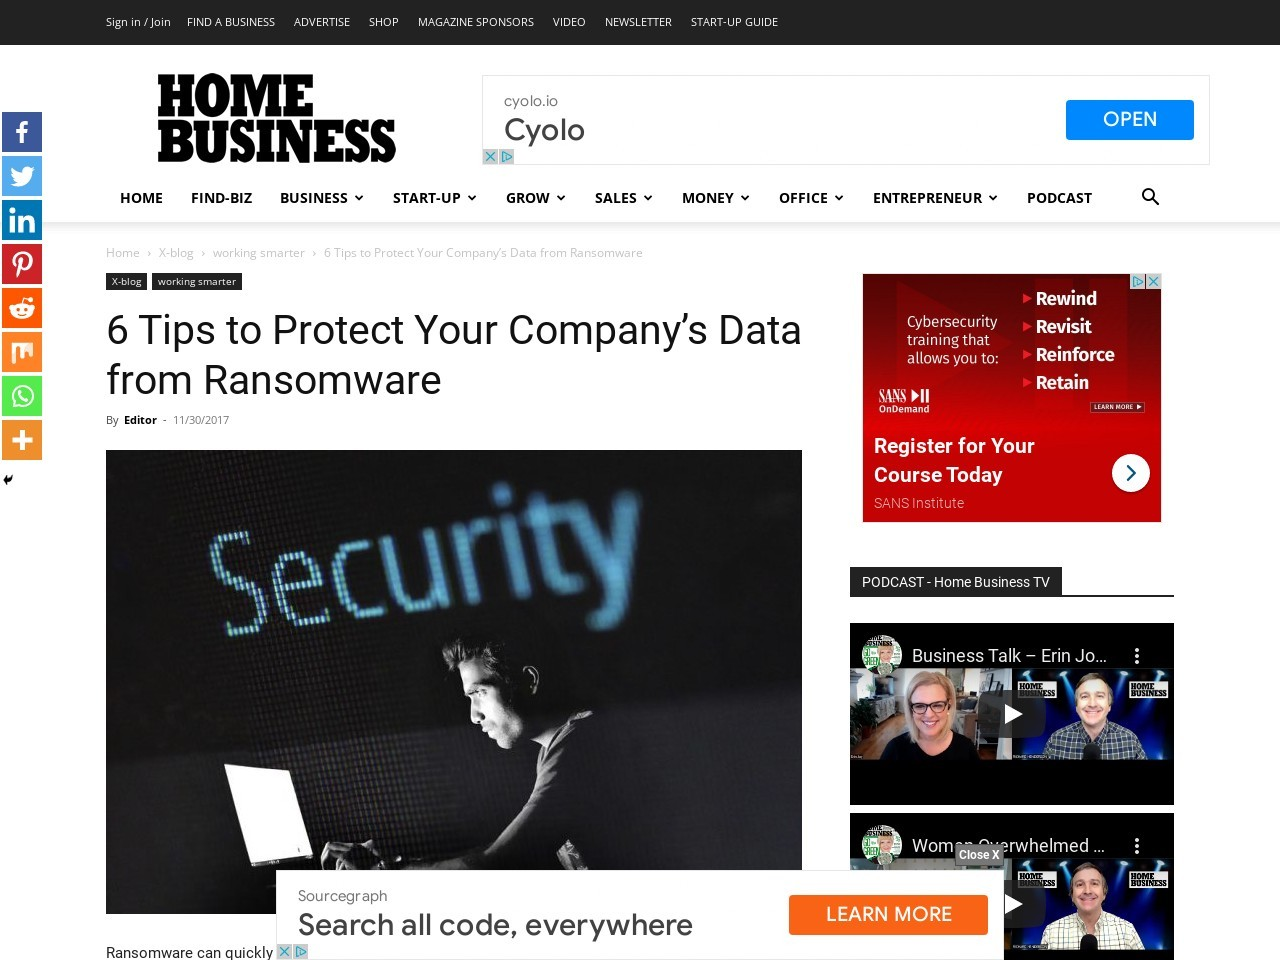 6 Tips to Protect Your Company's Data from Ransomware